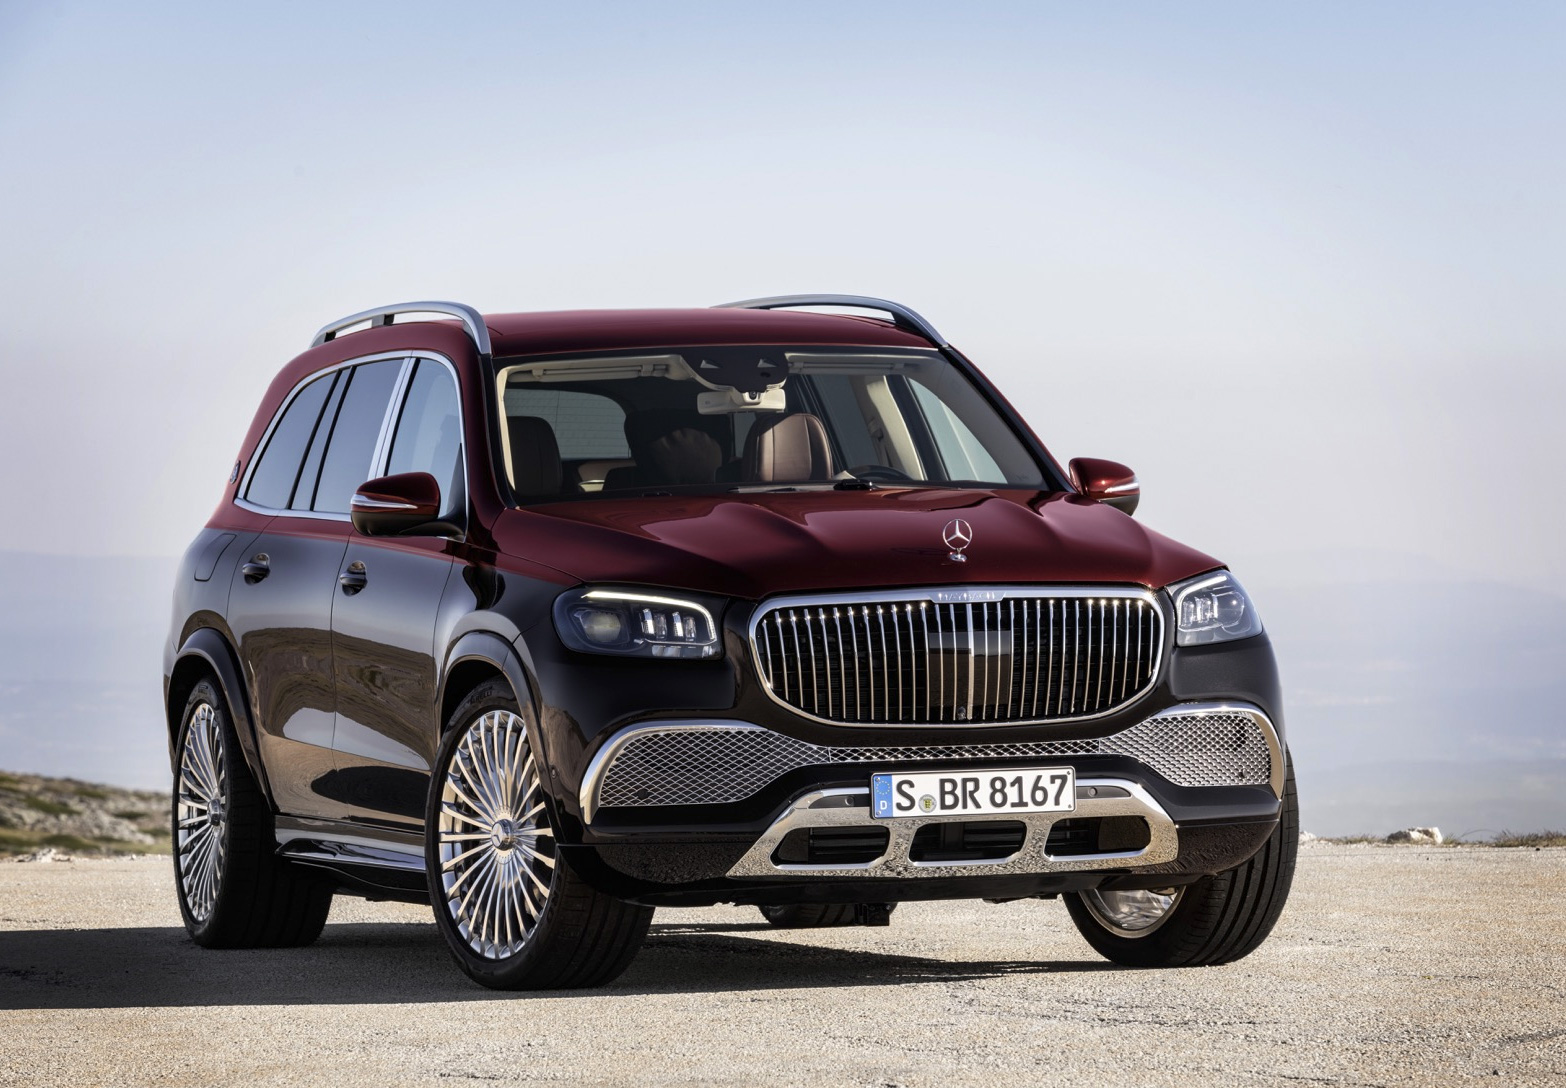 Mercedes-Maybach Unveils GLS 600 SUV at werd.com